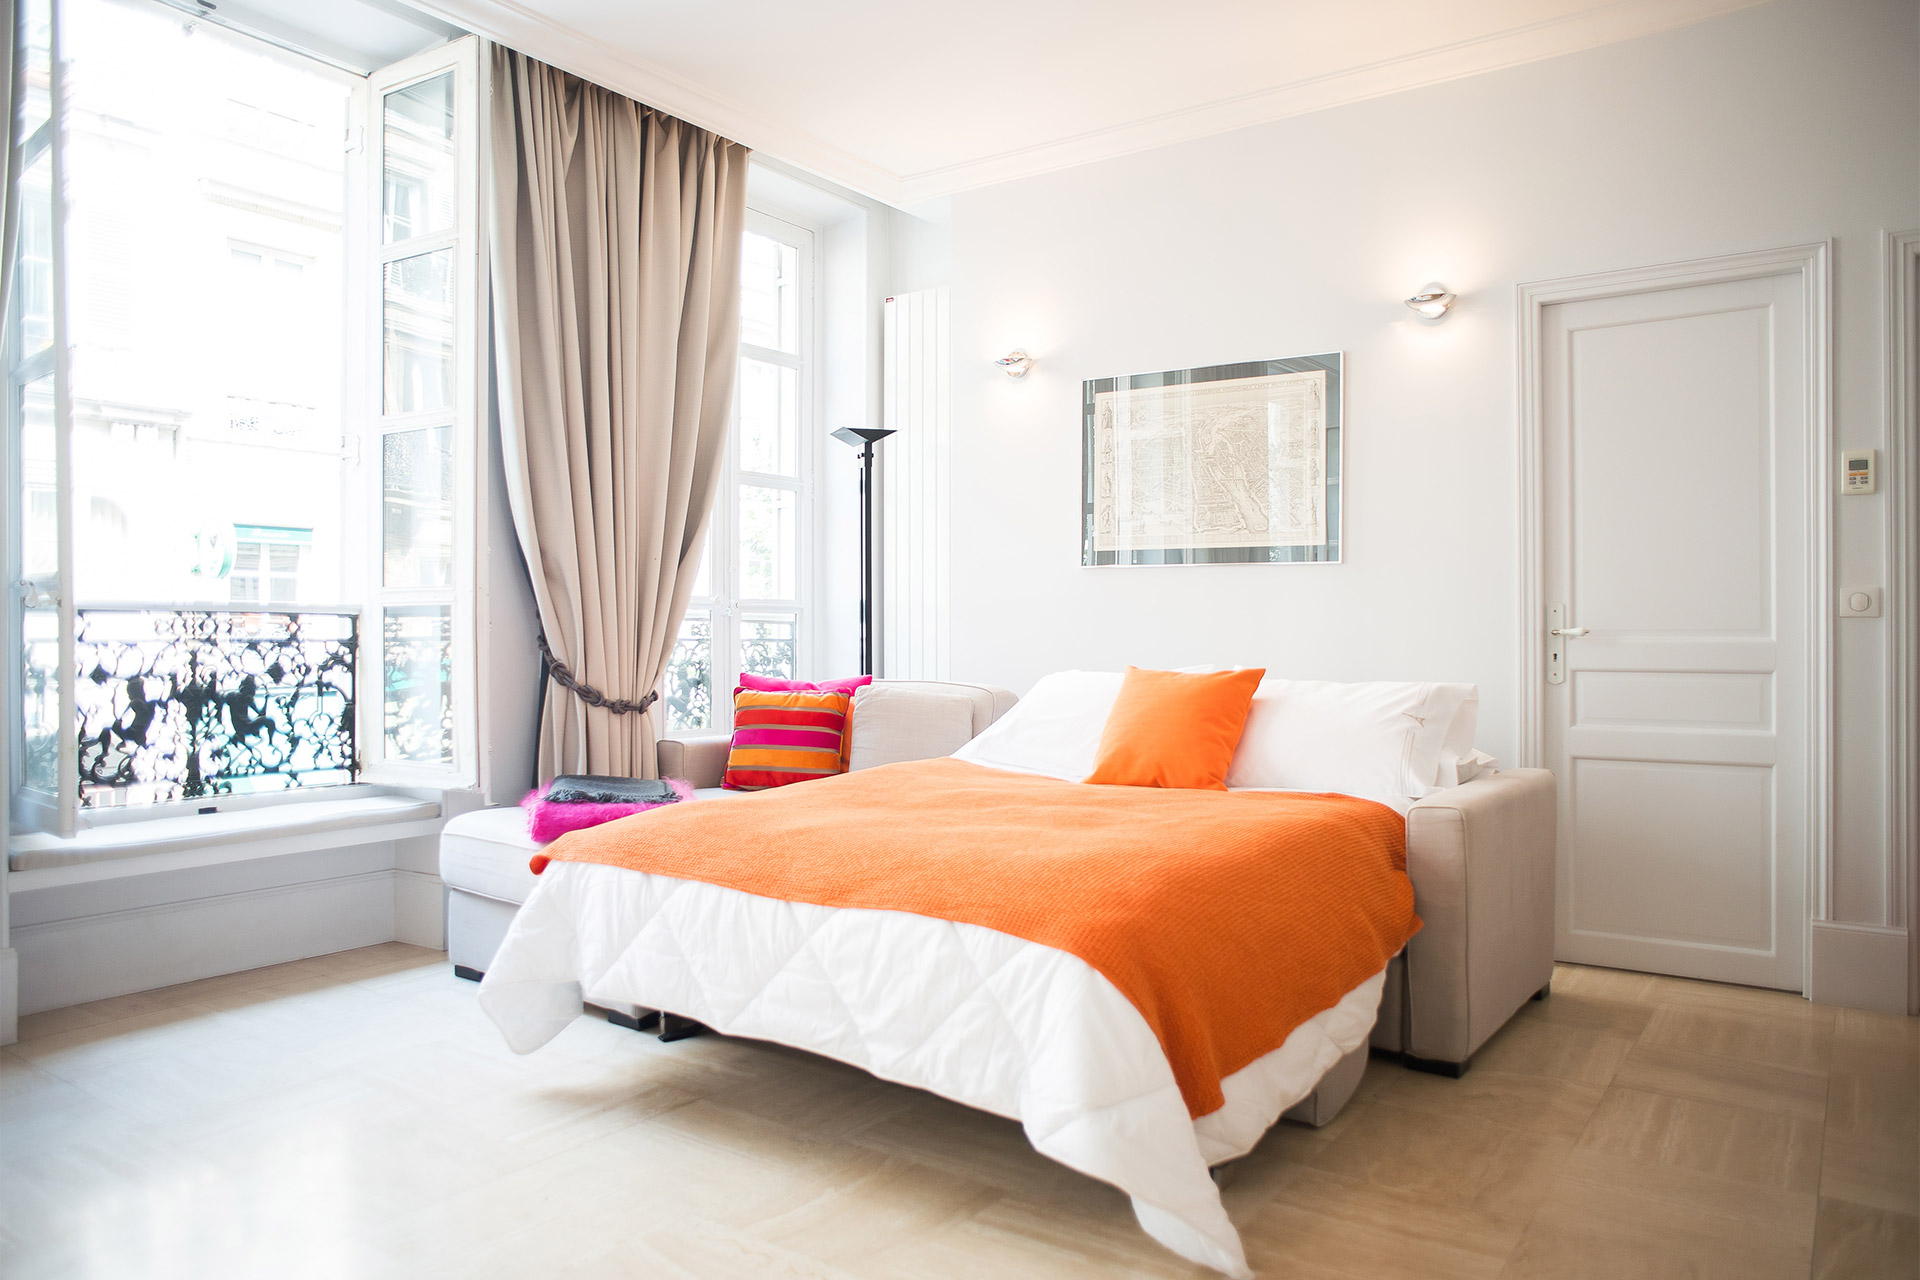 Sofa converts into a comfortable double bed in the Bel-Air vacation rental offered by Paris Perfect